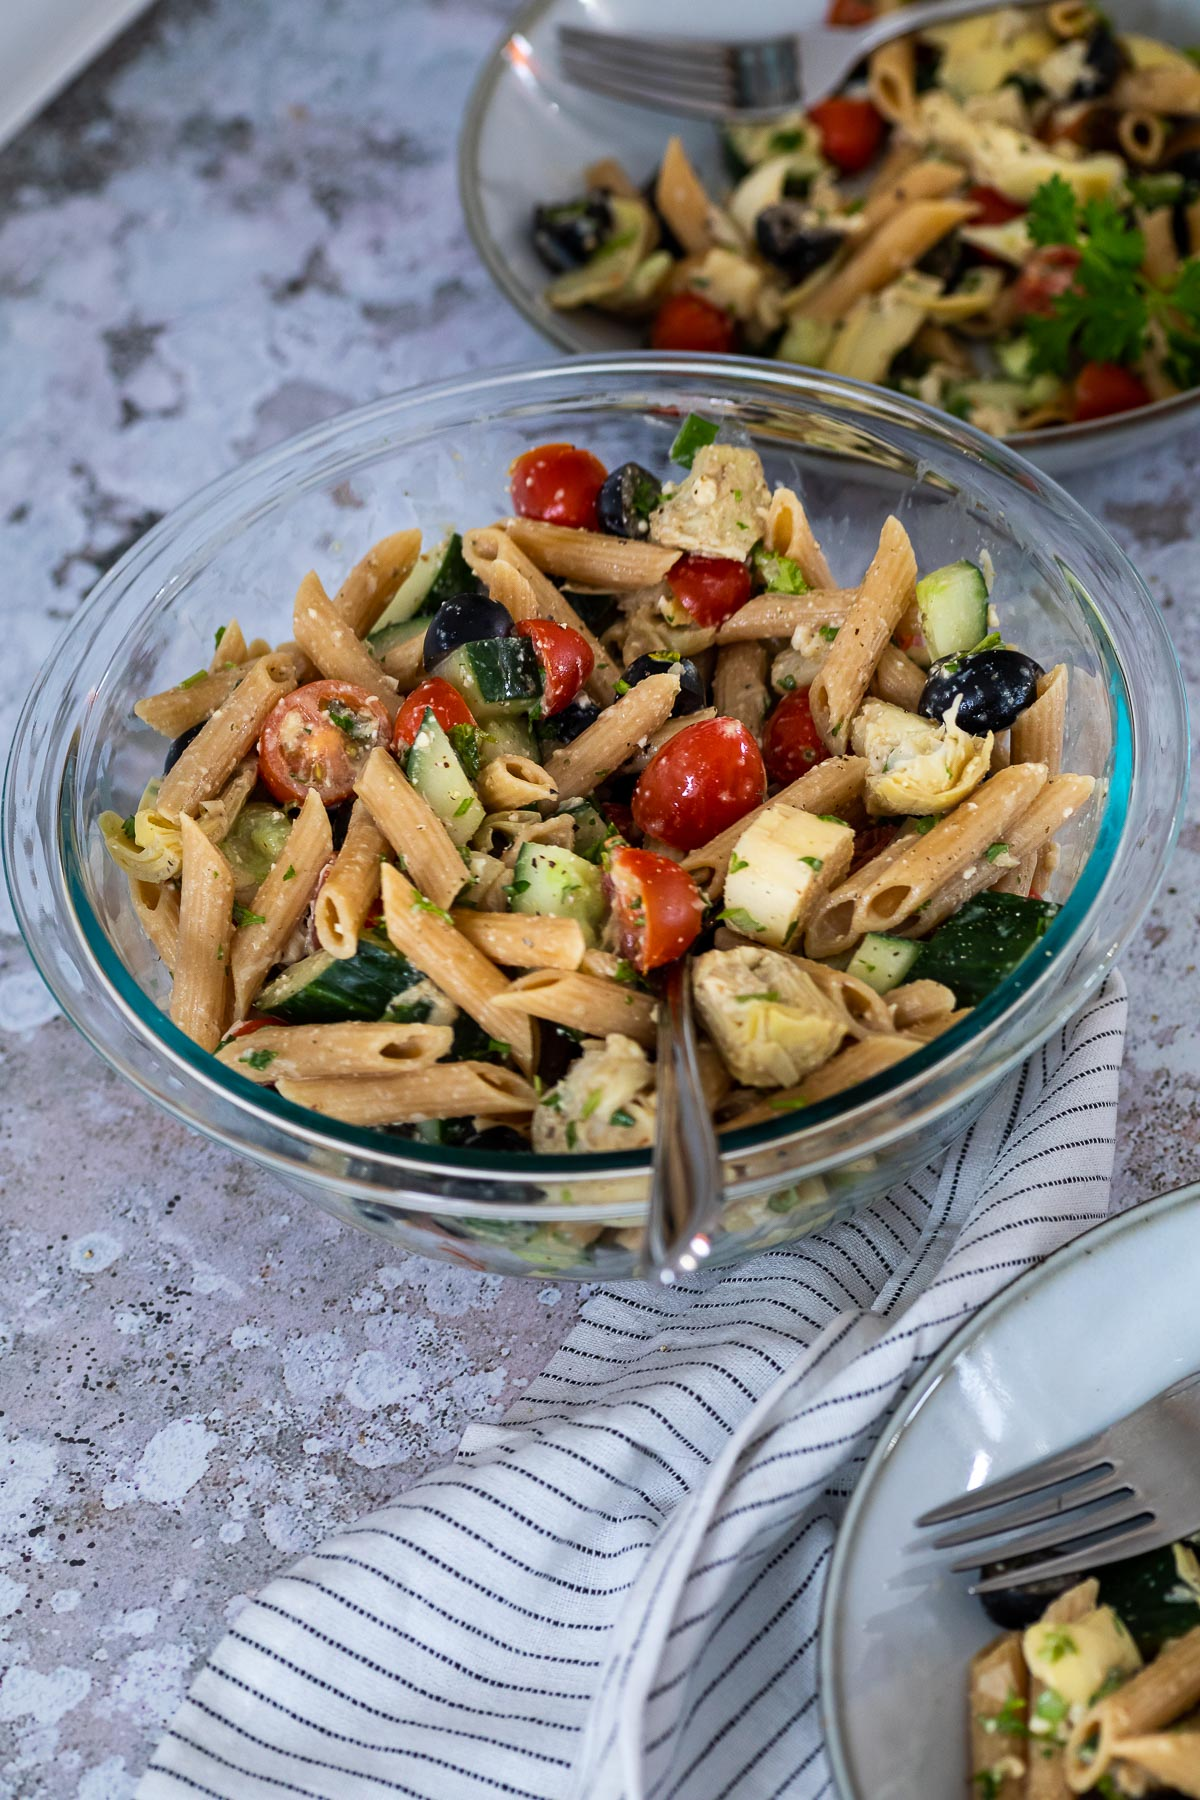 A bowl with vegan artichoke pasta salad and two plates in the background